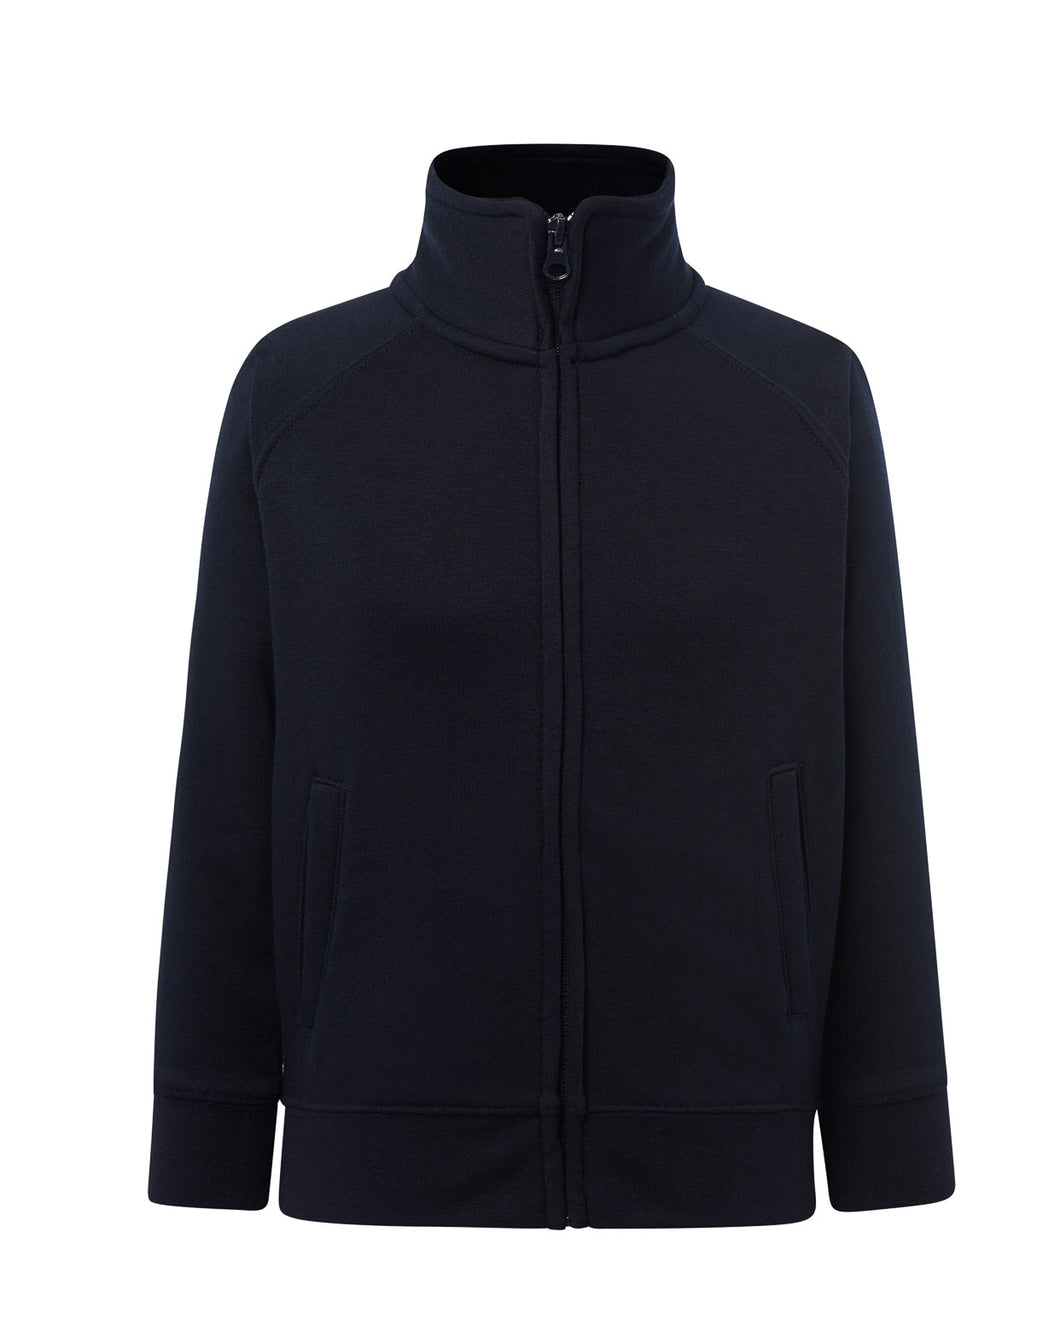 No Hooded Zipper Sweater JHK